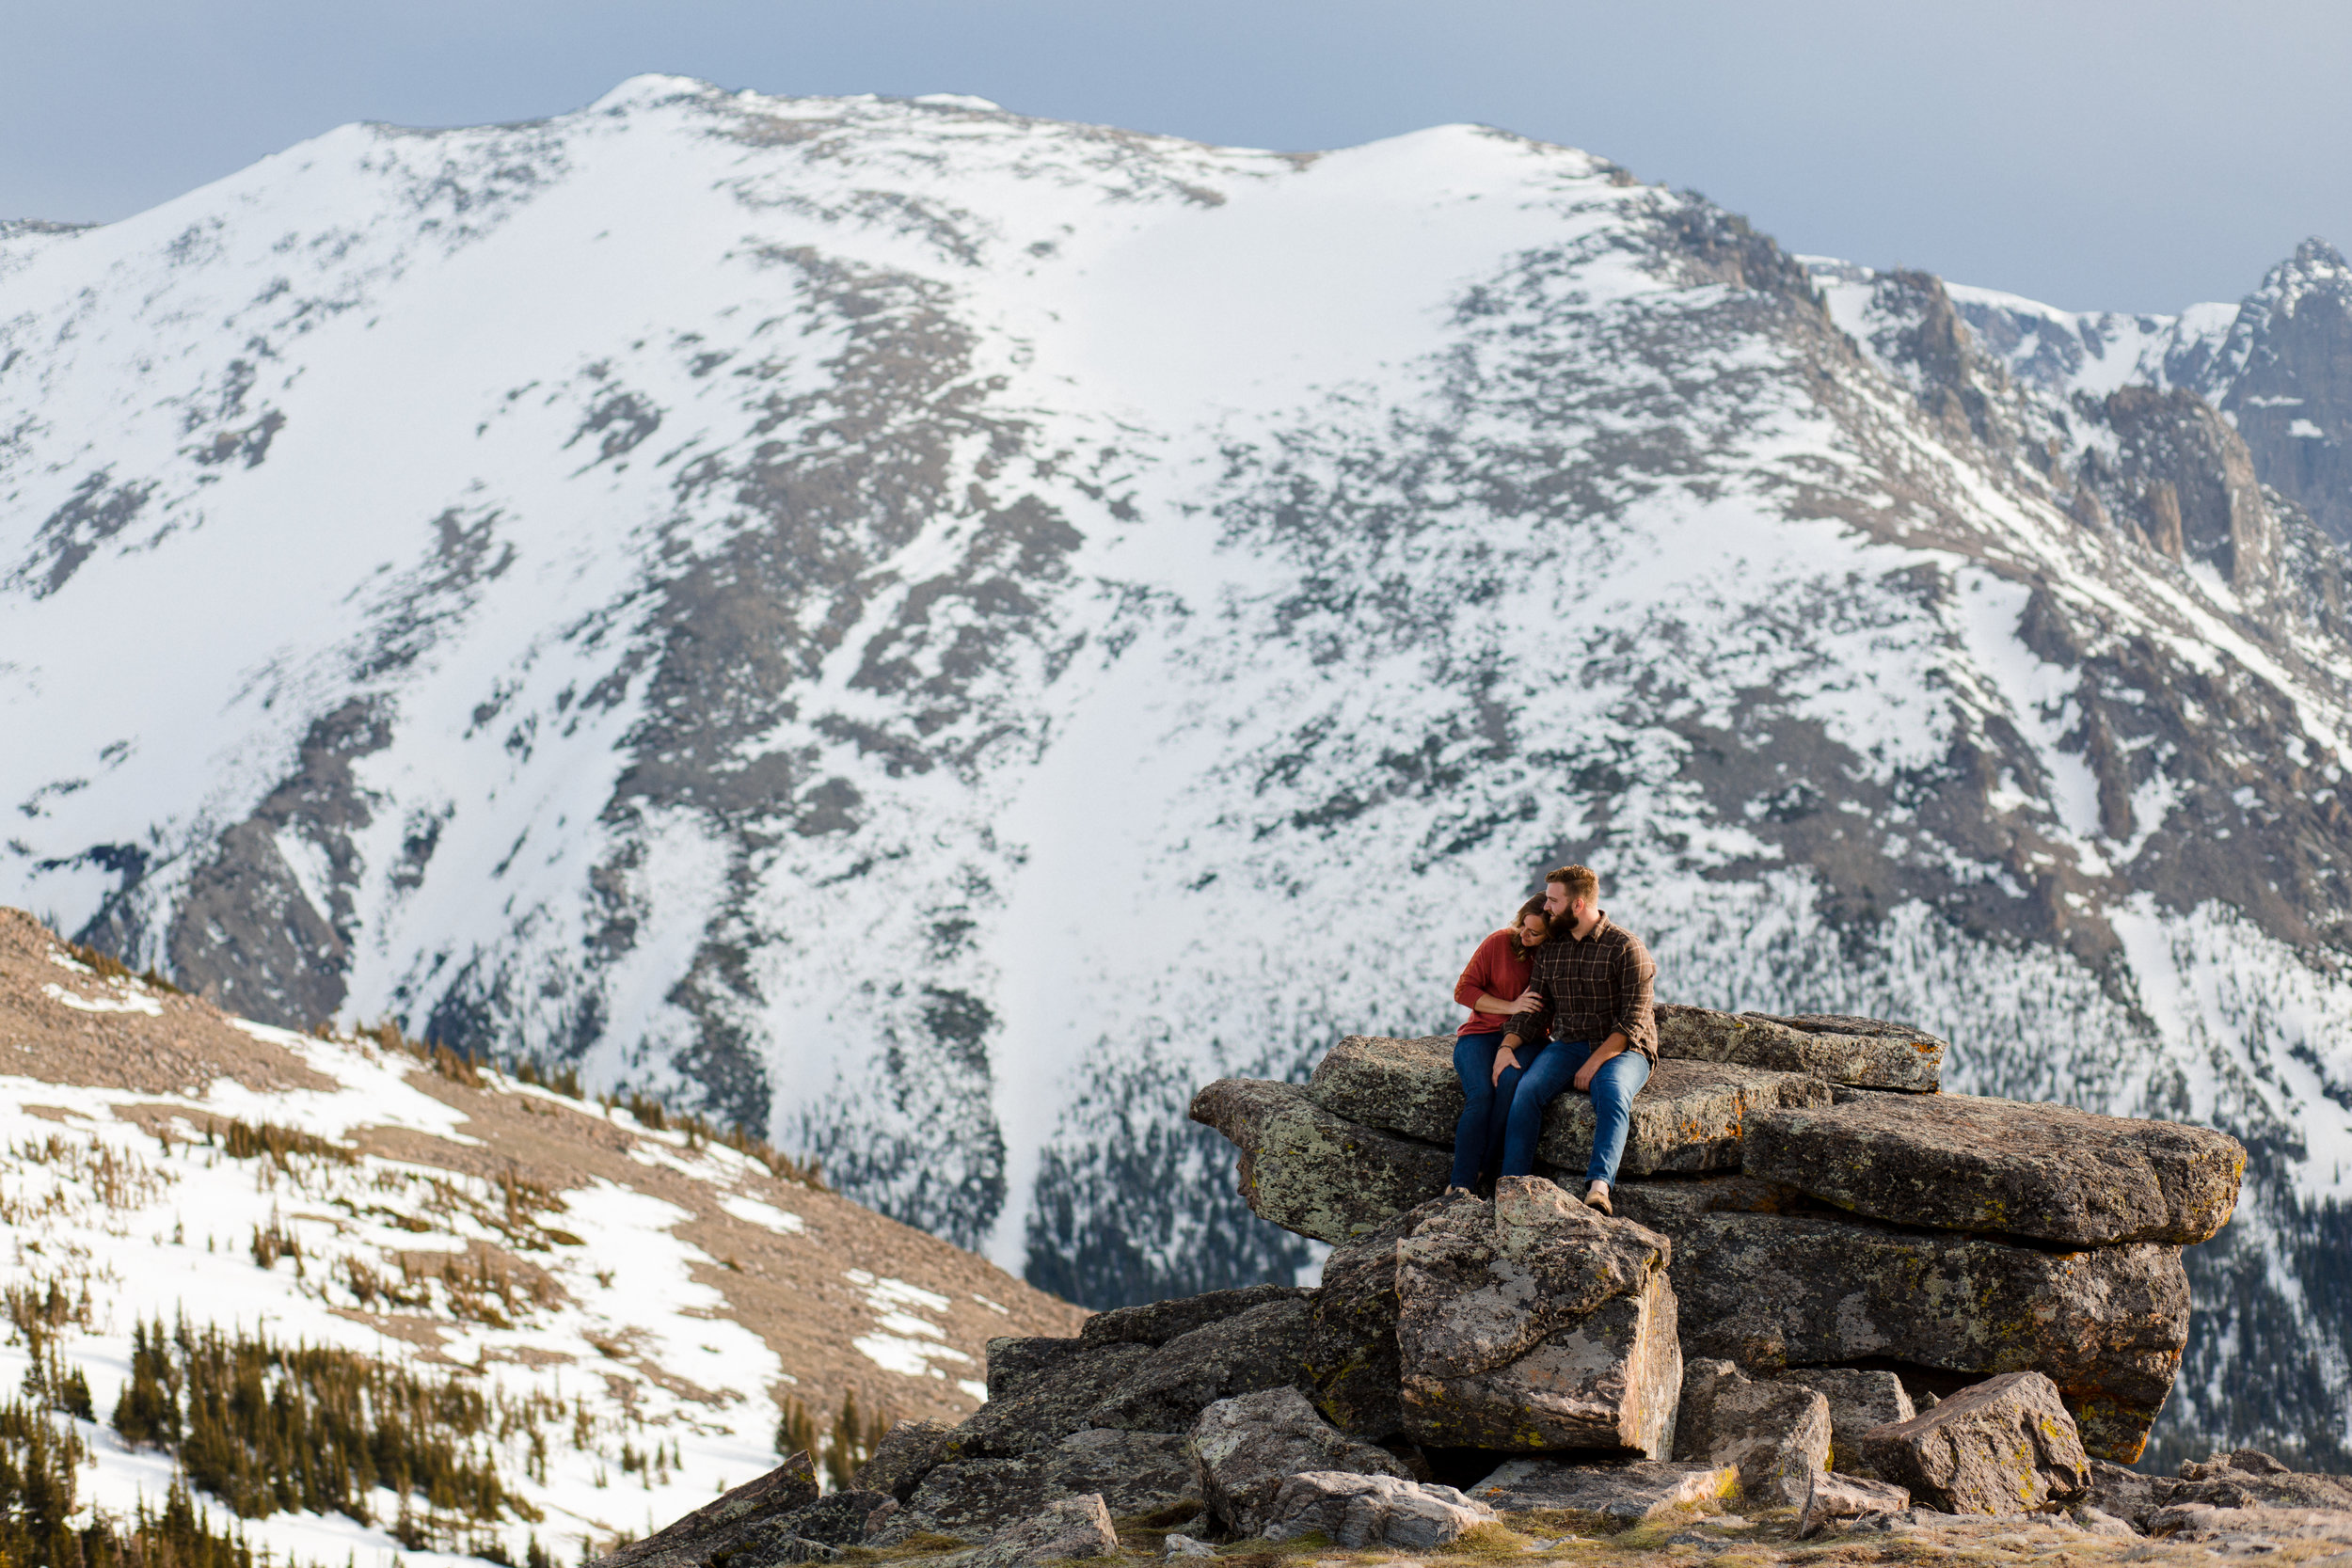 JESSICA + DANIEL | ADVENTURE ENGAGEMENT SESSION IN ROCKY MOUNTAIN NATIONAL PARK